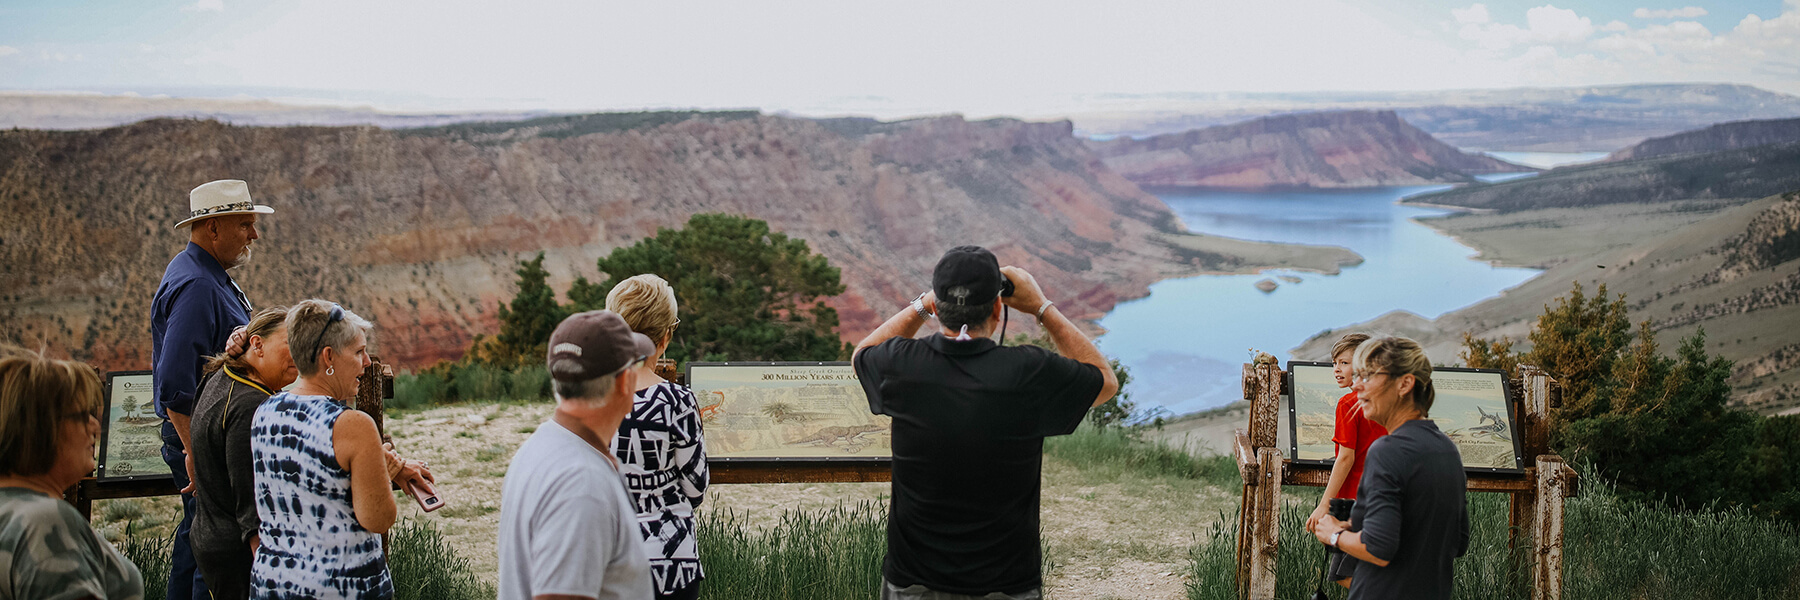 Visitors enjoying the scenic overlooks in Flaming Gorge National Recreation Area